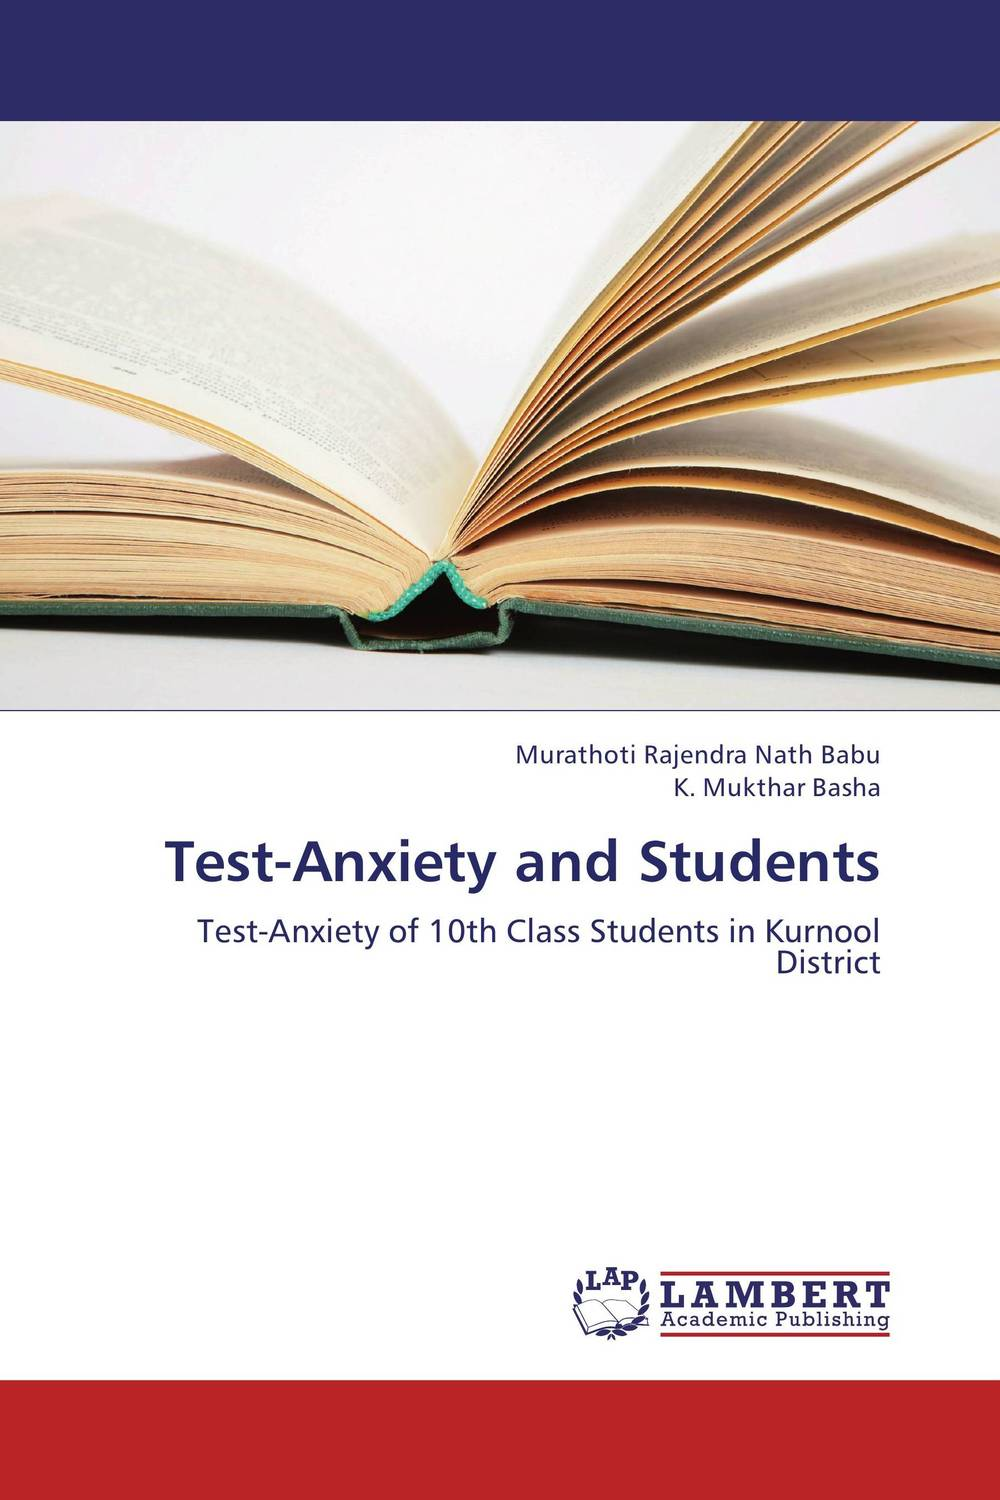 Test-Anxiety and Students xeltek private seat tqfp64 ta050 b006 burning test